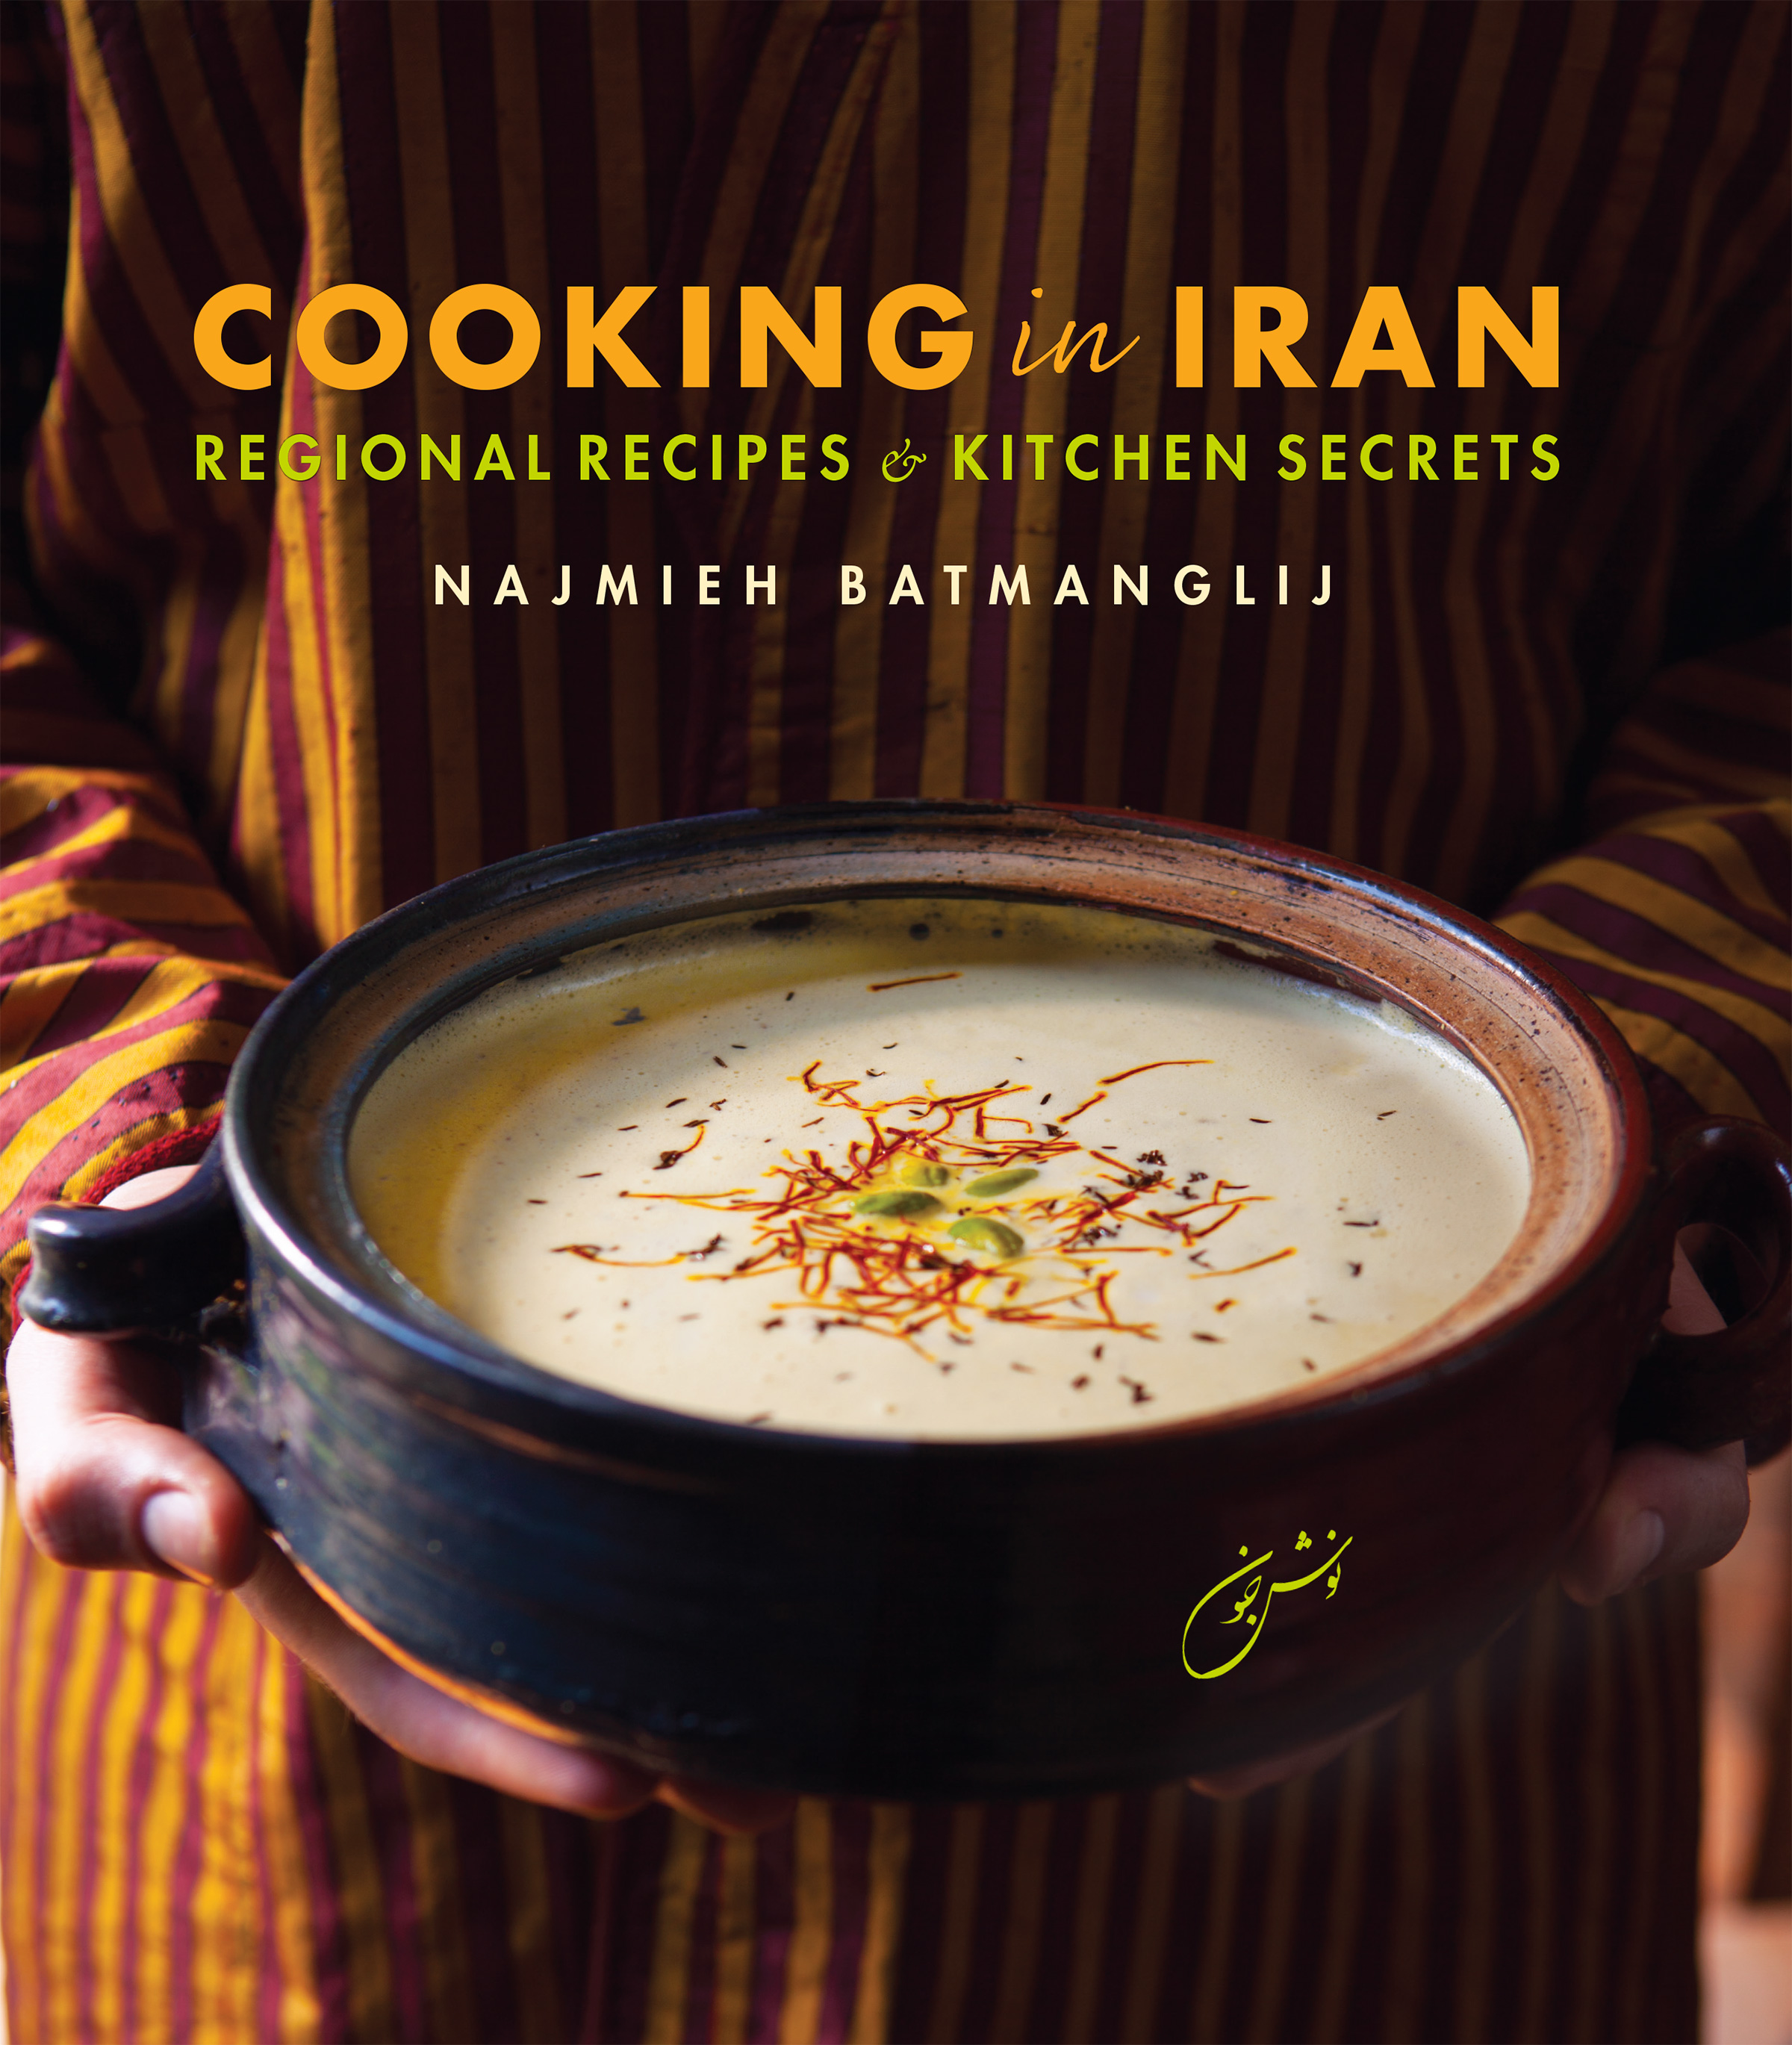 Cooking in Iran: Regional Recipes and Kitchen Secrets by Najmieh Batmanglij // Price: $65 // Buy online // http://magepublishers.com // (Image: Mohammad Batmanglij)